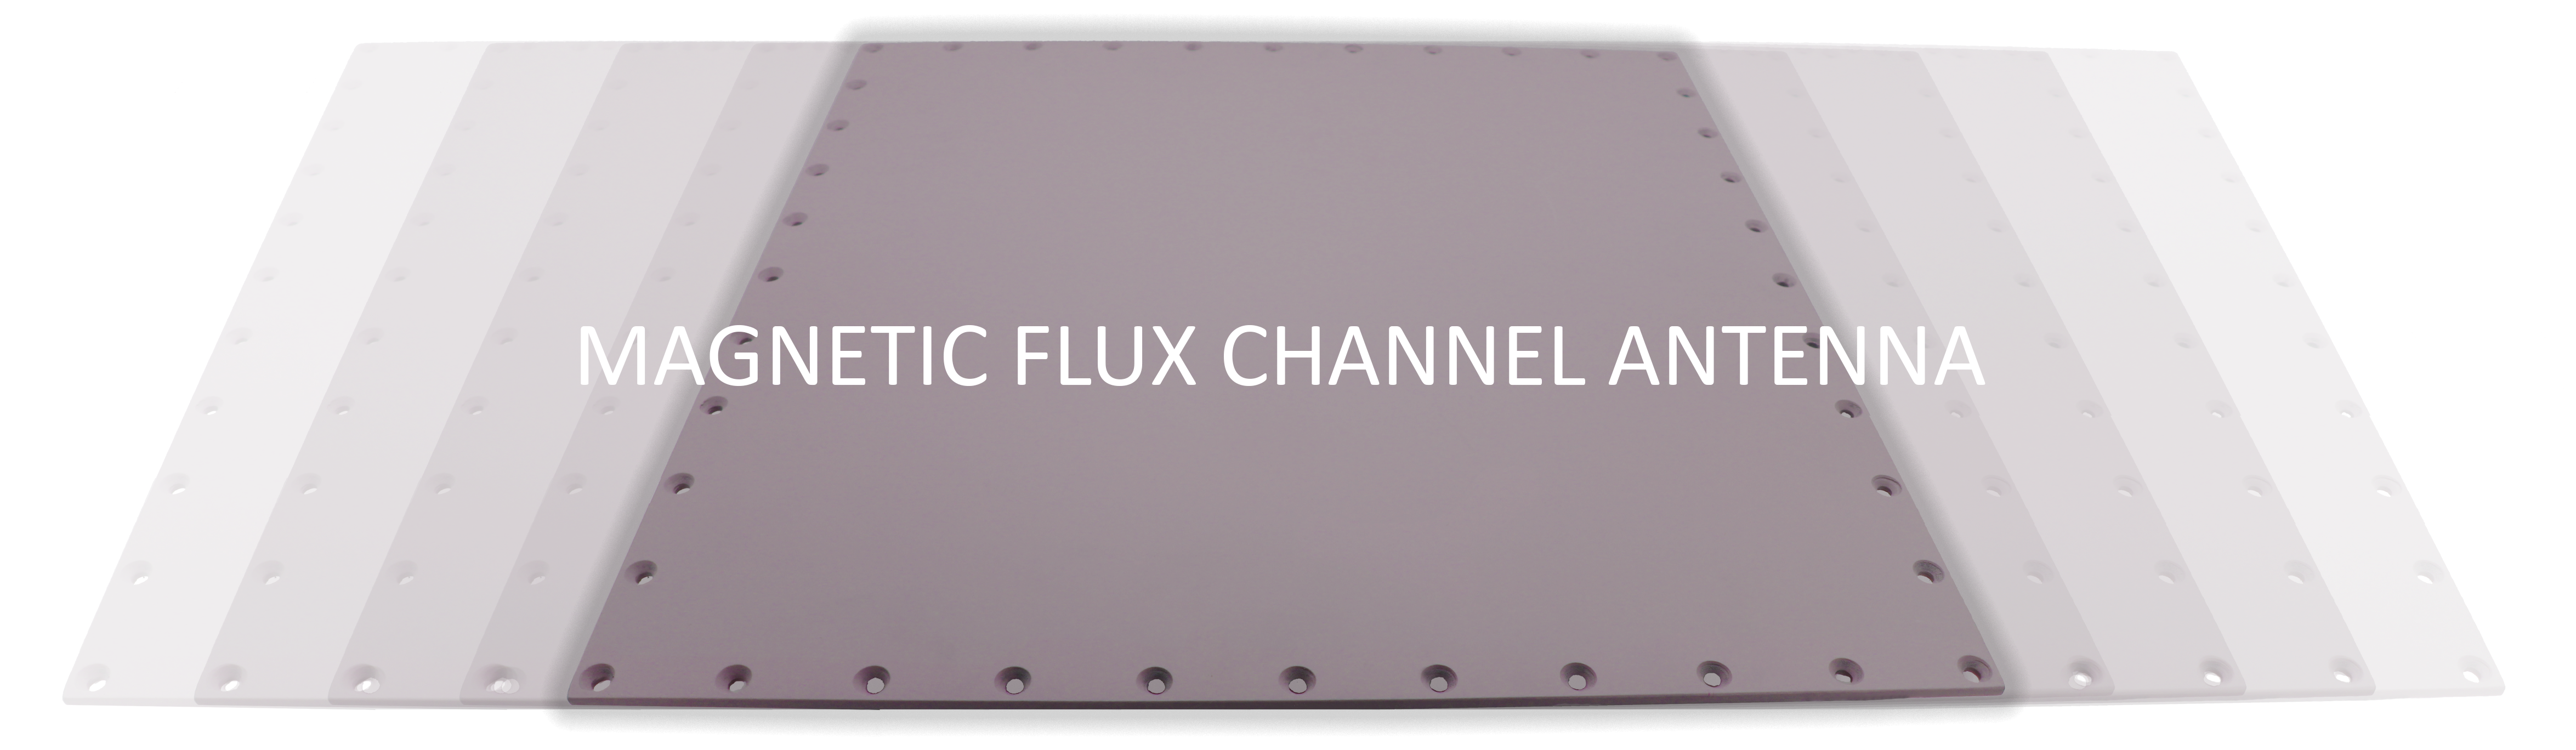 MFC | Magnetic Flux Channel Antenna